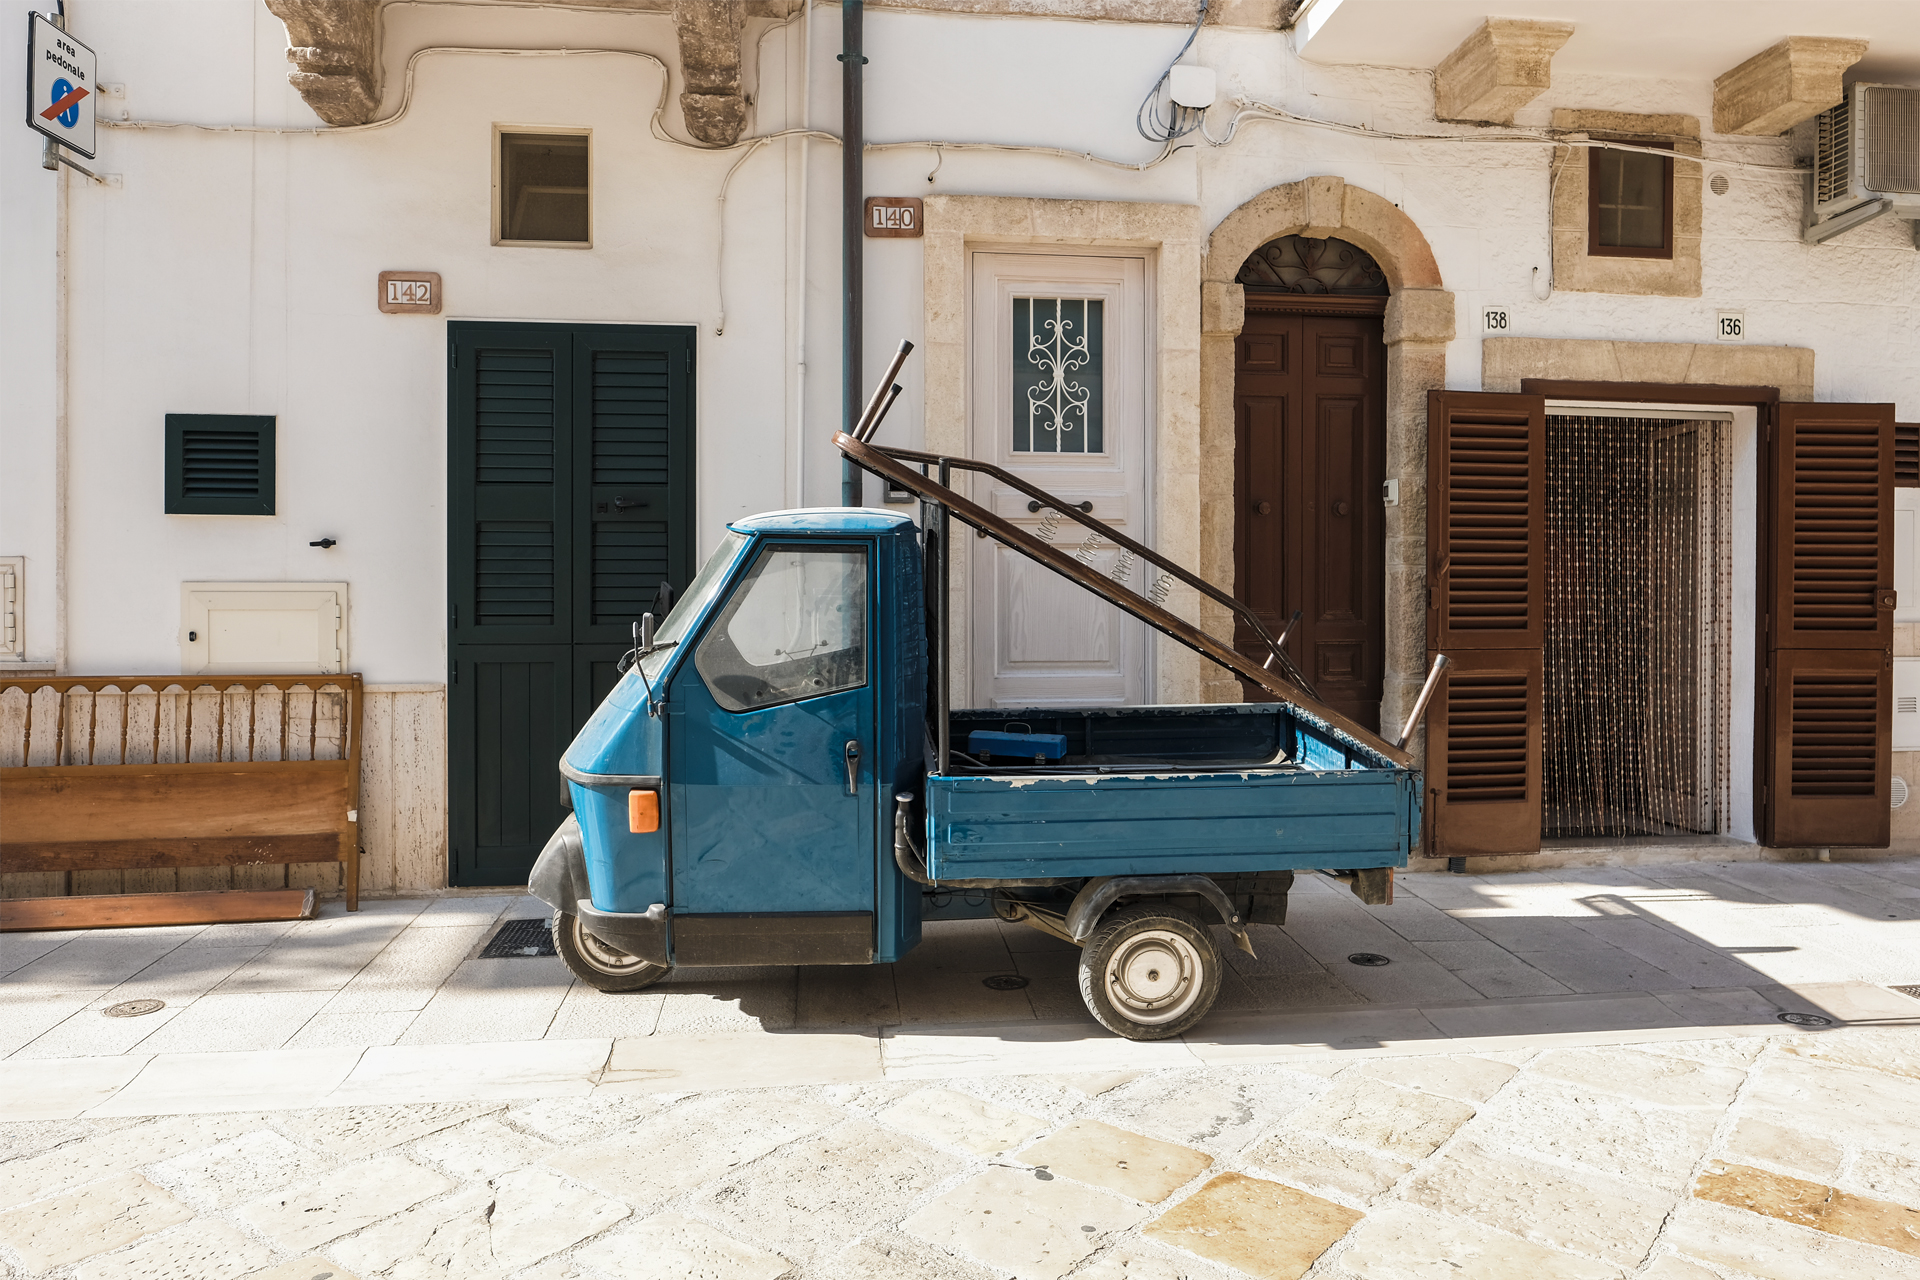 Blue tuck tuck parked in front of white building a glimpse of Puglia